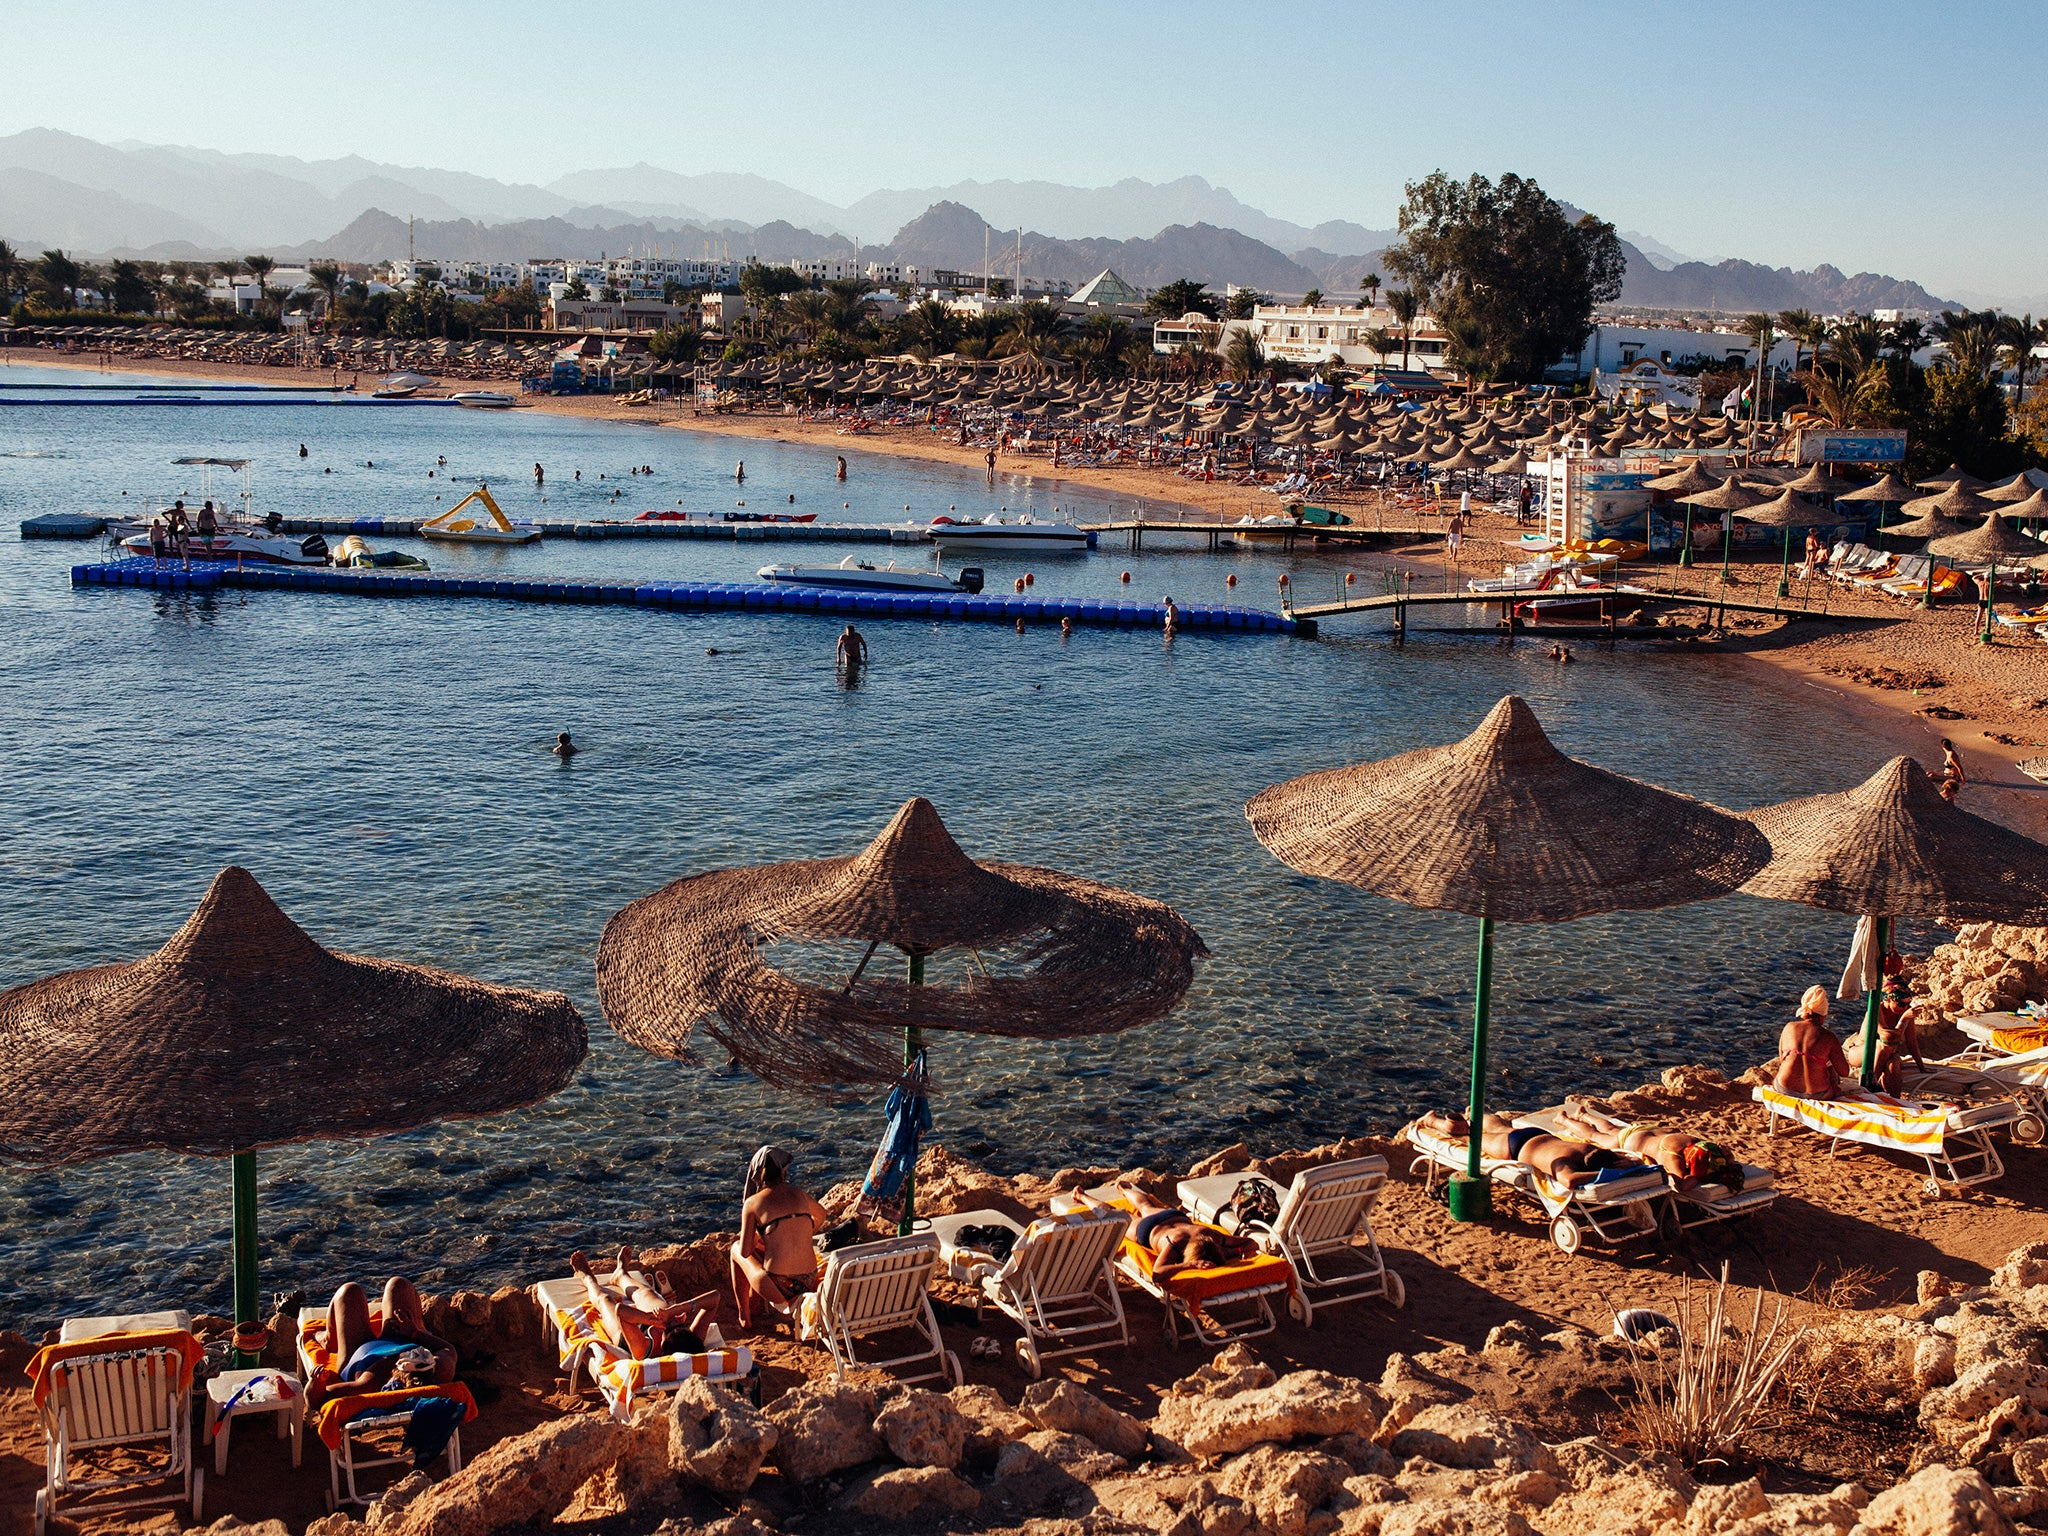 travel news advice british airways abandons egypt sharm sheikh resort blow countrys tourist industry